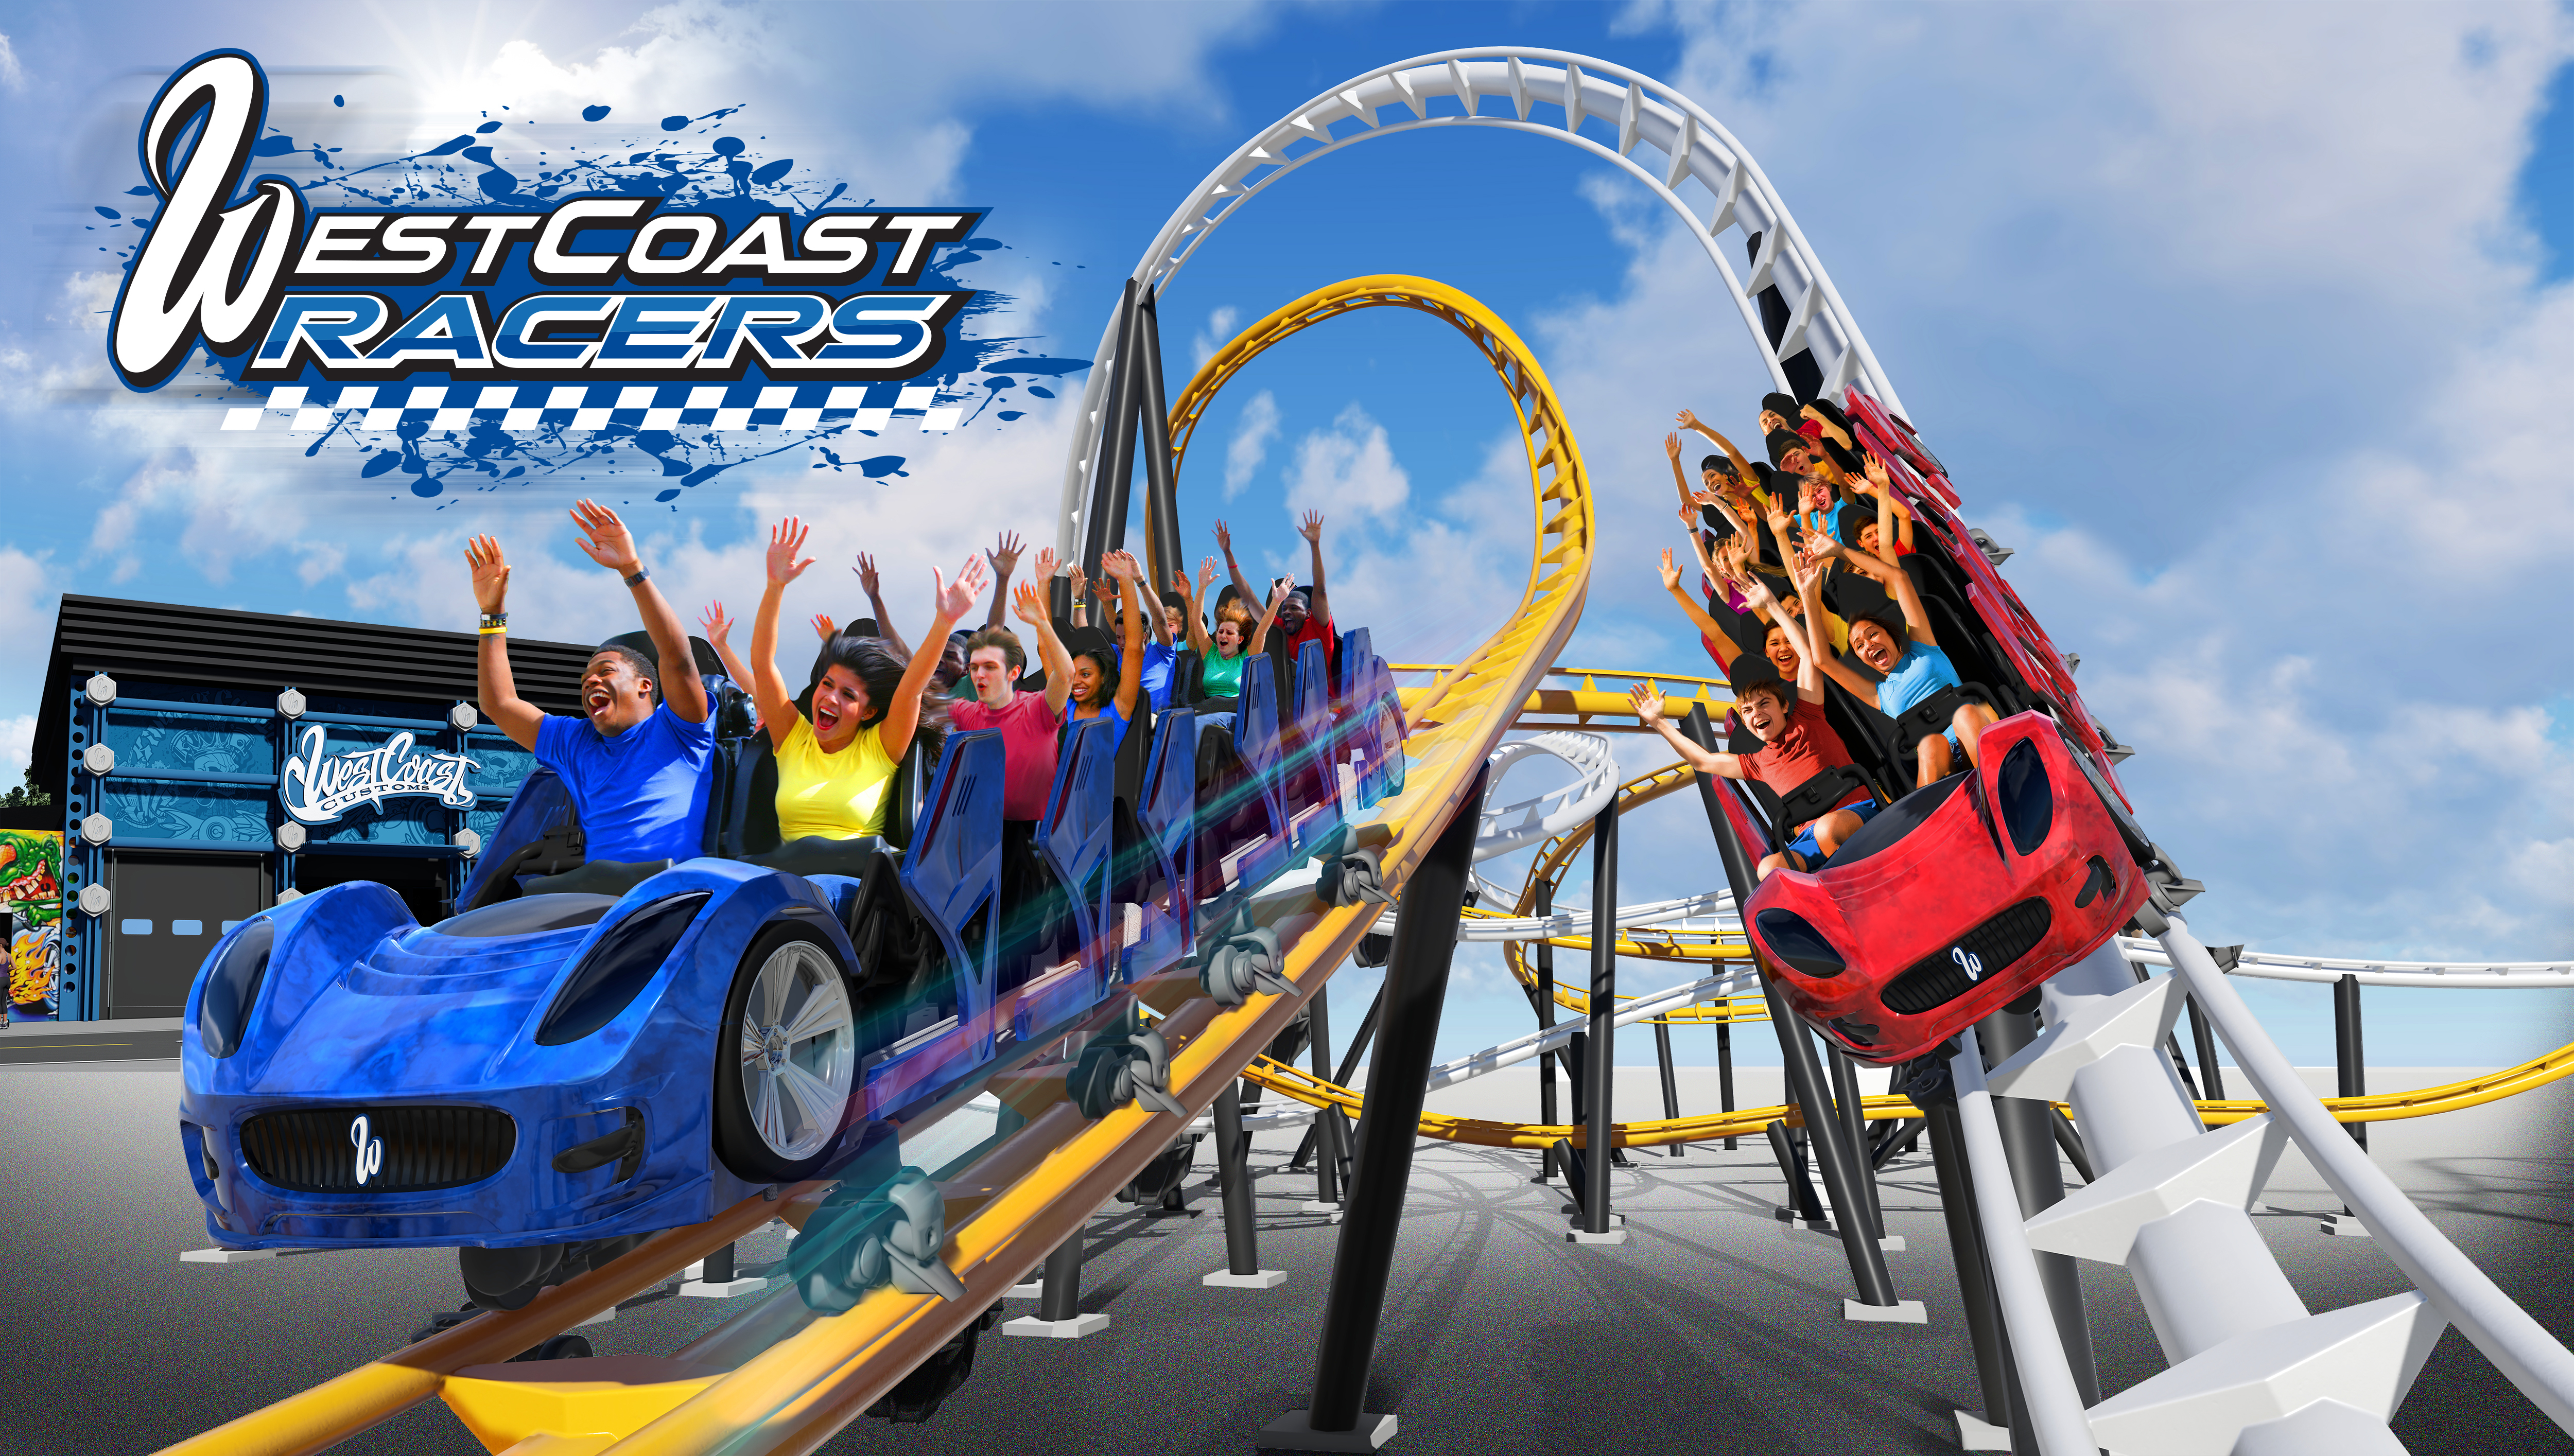 Speed Launch Roller Coaster Michaelieclark Diagram Of Kingda Ka Related Keywords Suggestions Worlds First Racing West Coast Racers Debuting At Six Flags Magic Mountain